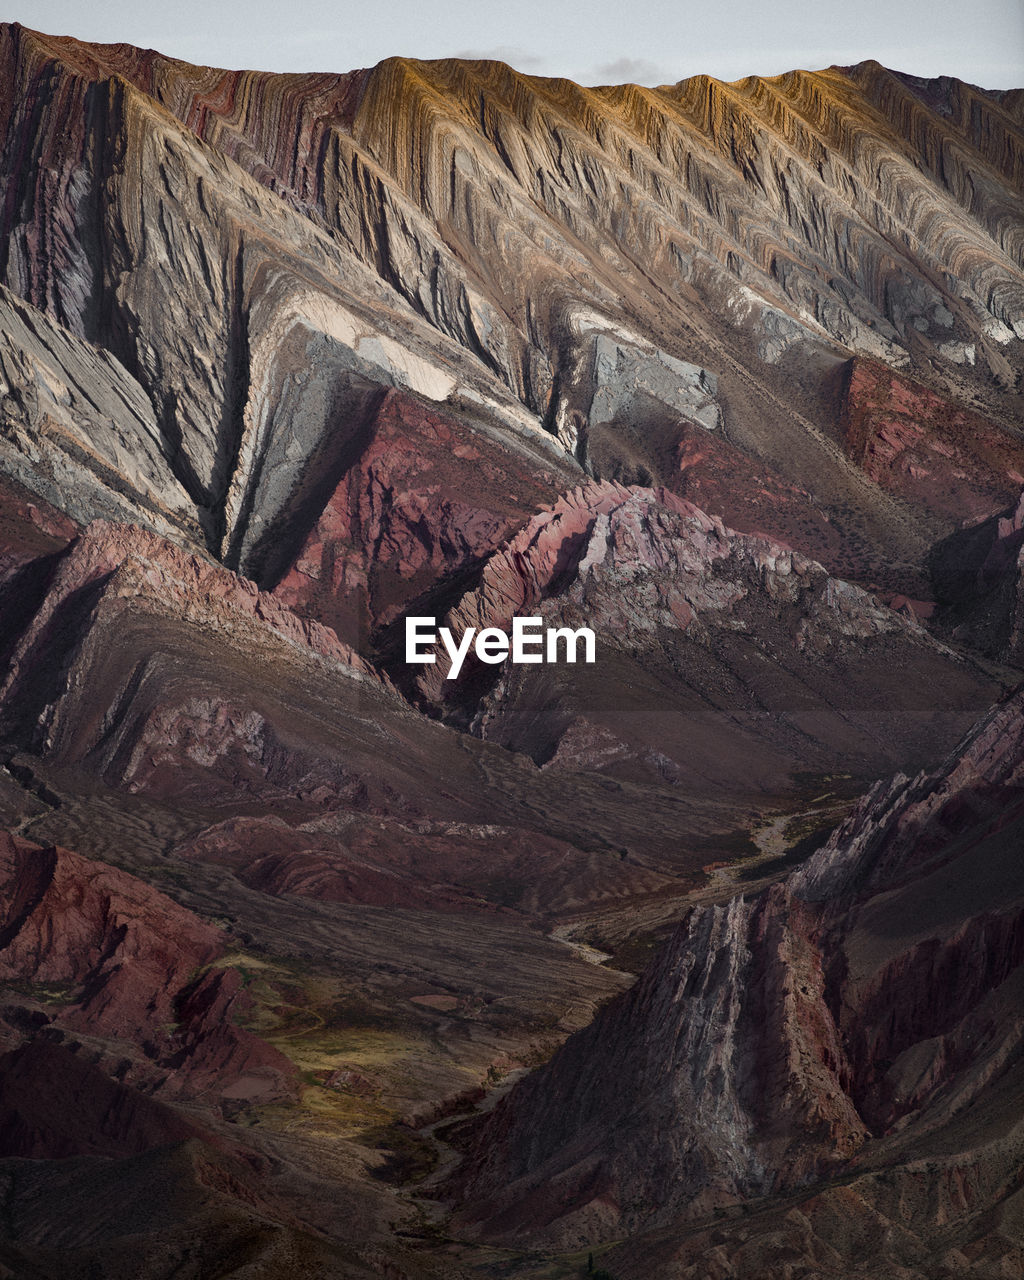 mountain, landscape, scenics - nature, non-urban scene, rock, environment, beauty in nature, no people, tranquil scene, rock formation, nature, geology, tranquility, day, rock - object, physical geography, solid, travel destinations, extreme terrain, mountain range, outdoors, formation, arid climate, eroded, climate